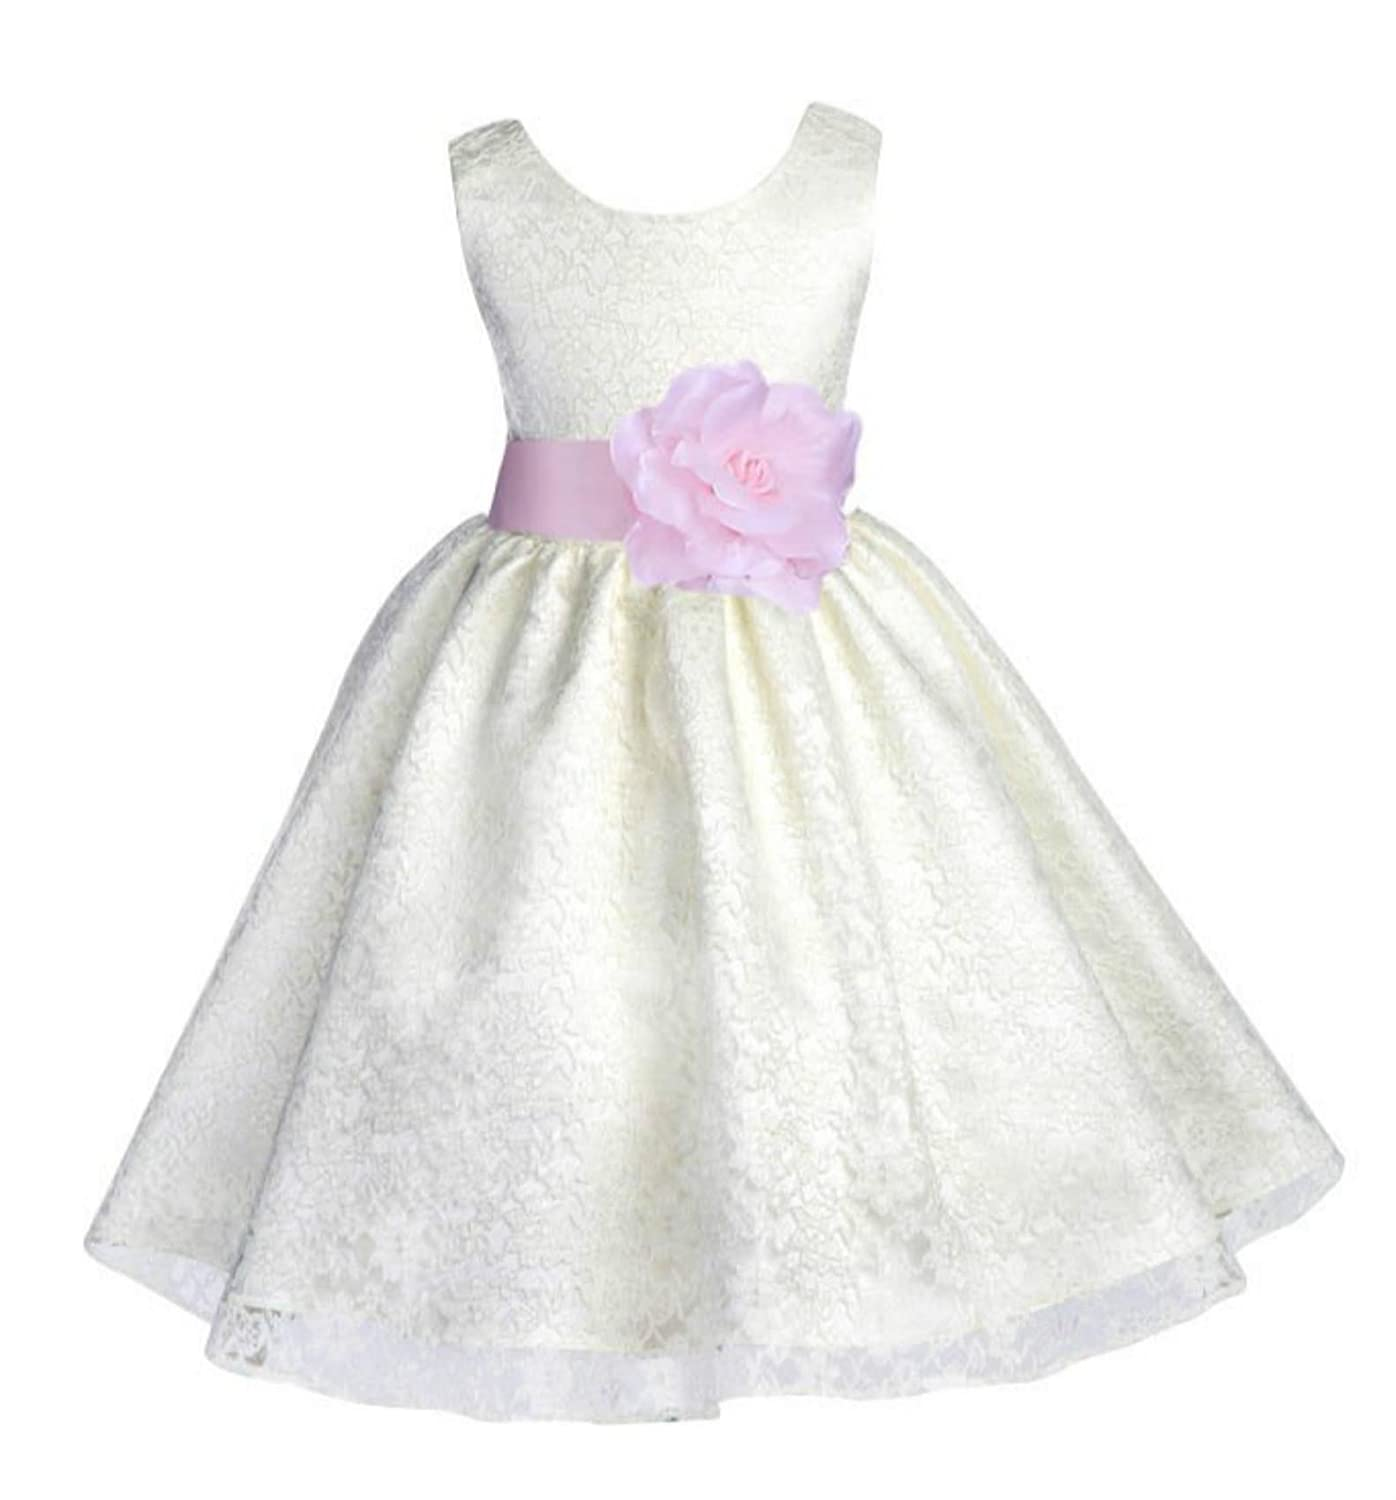 Wedding Baby Ivory Floral Lace Overlay Flower girl dress Gown 163s